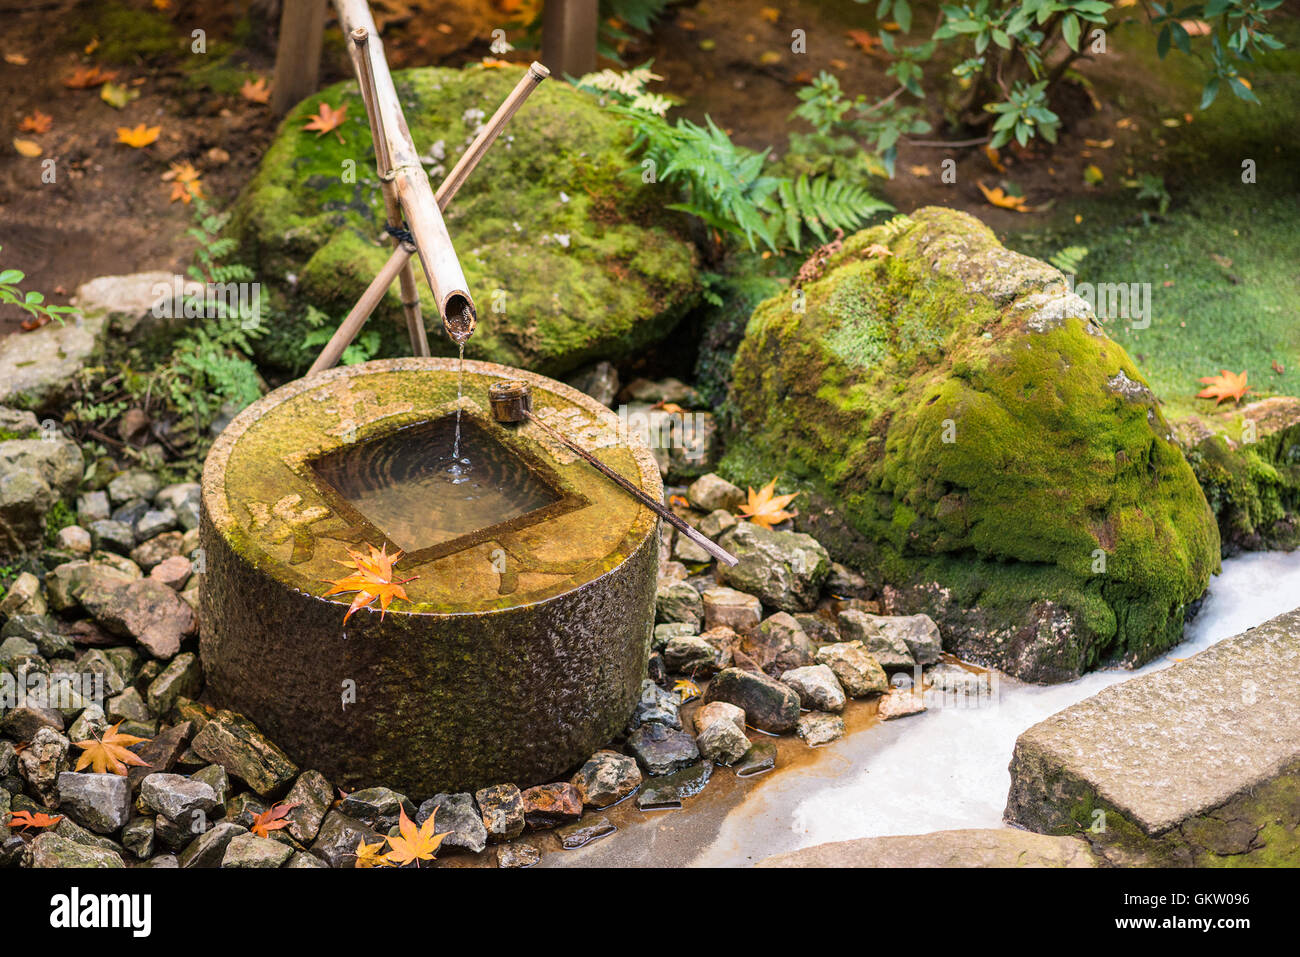 Traditional basin for hand washing in Kyoto, Japan. - Stock Image